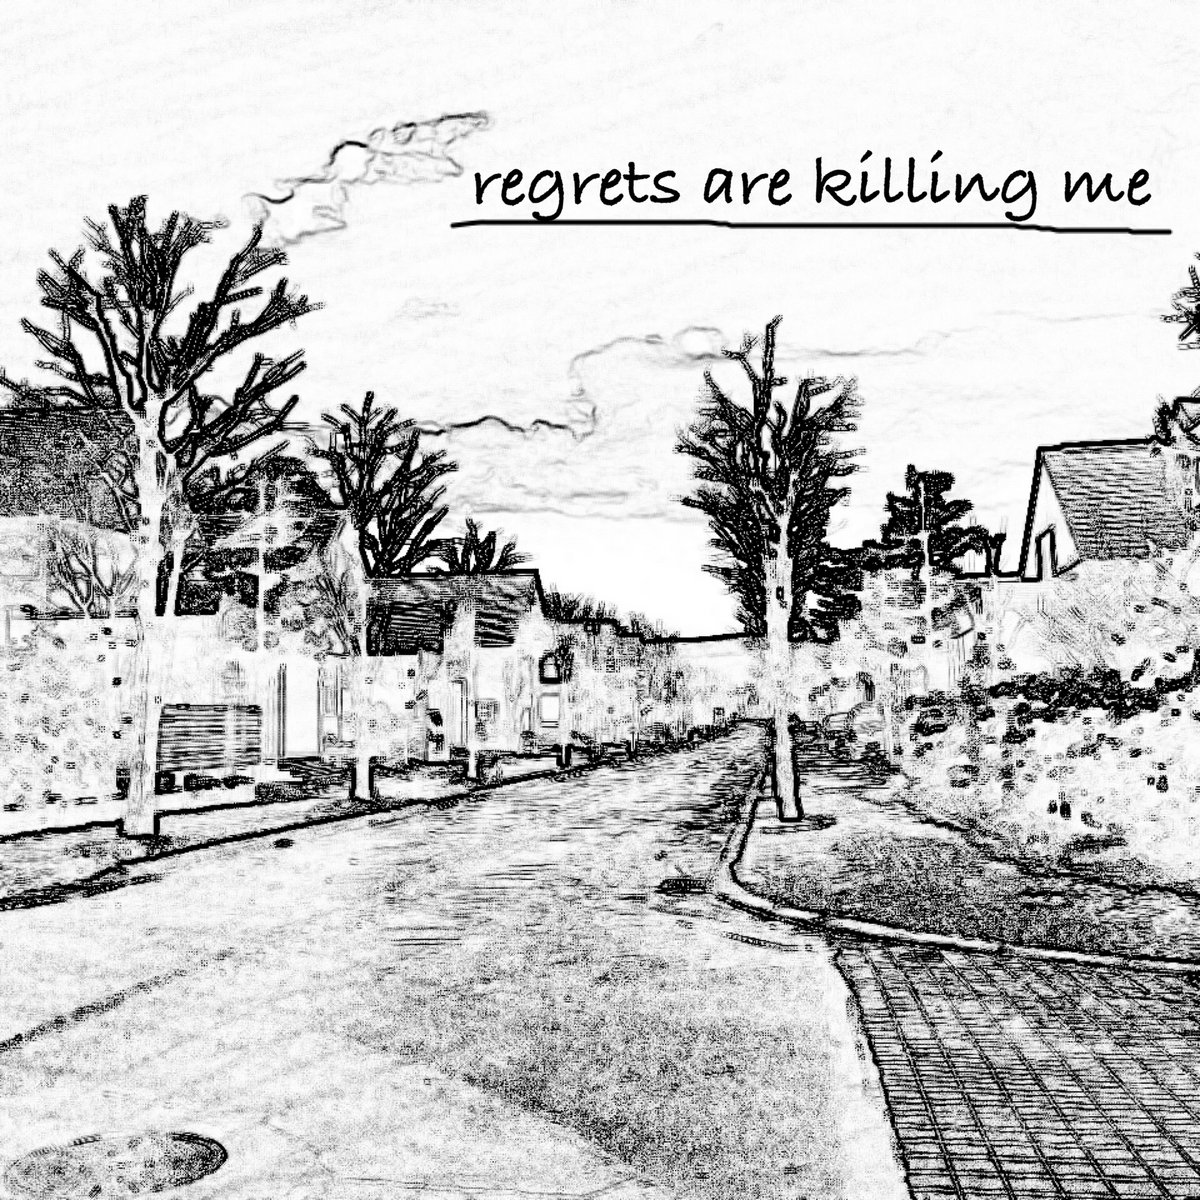 Day | regrets are killing me